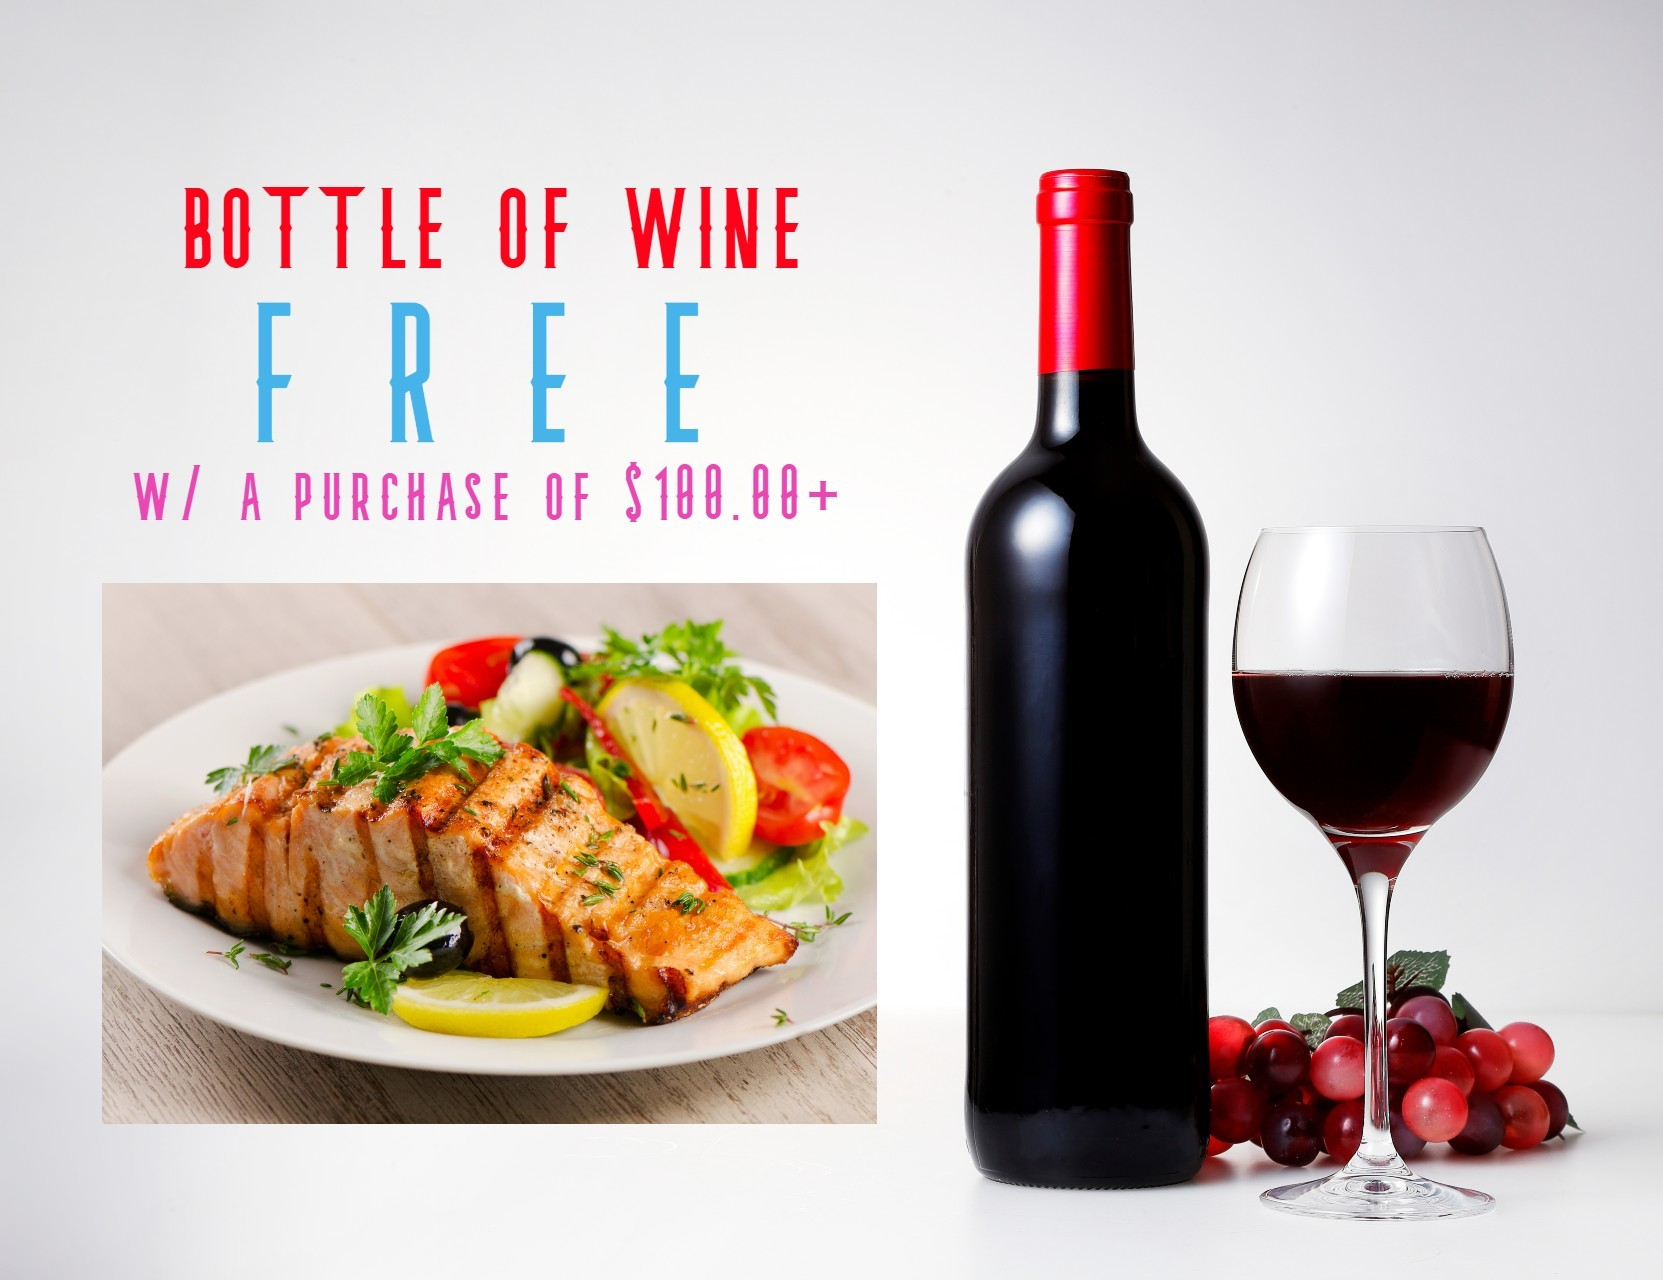 Free bottle of wine with a purchase of $100.00